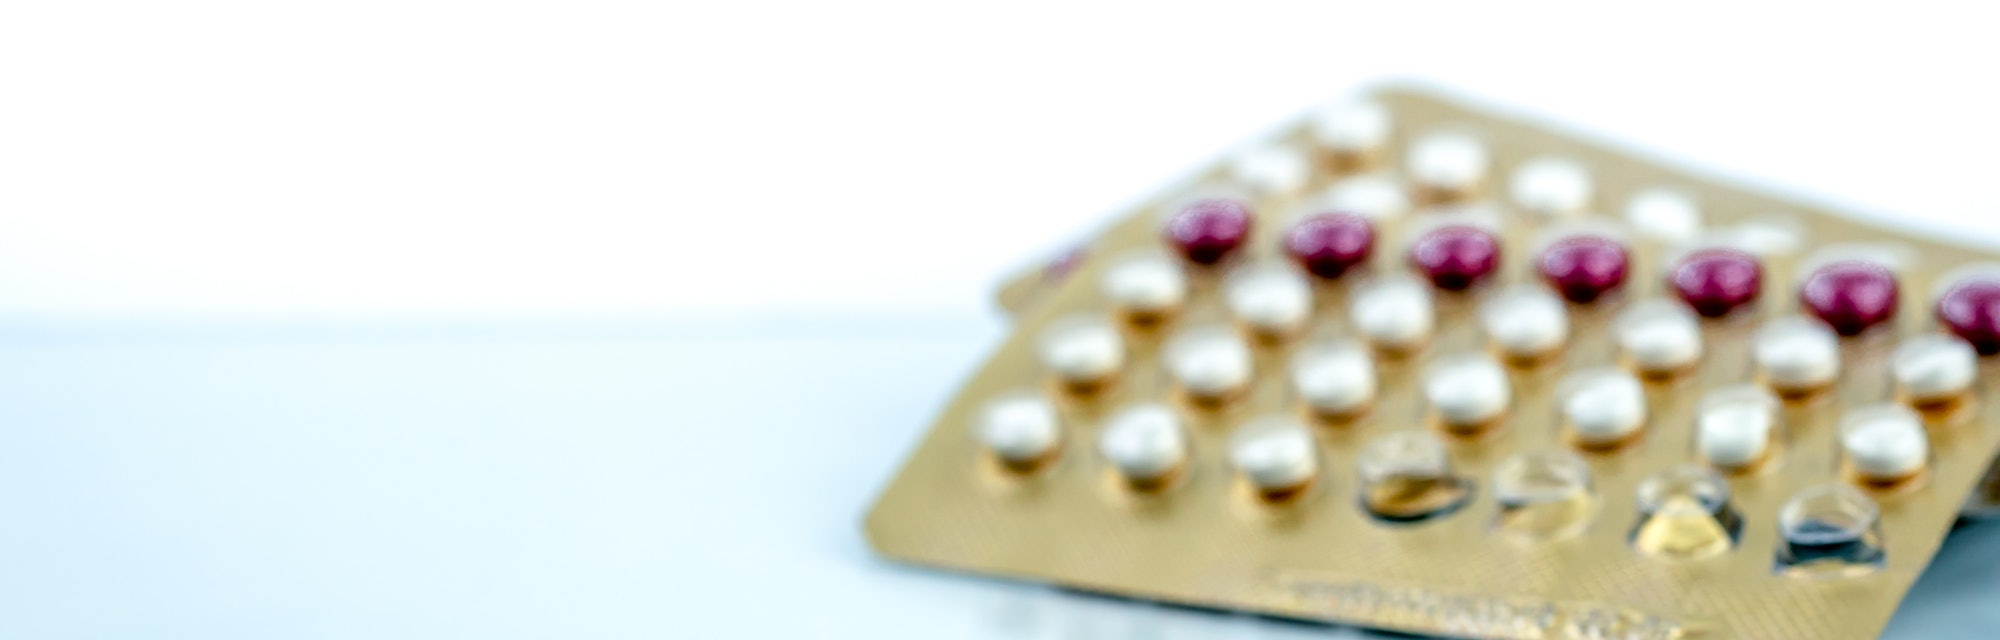 Oral contraceptive pills. Birth control pills. Hormones for contraception. Family planning, hormonal...